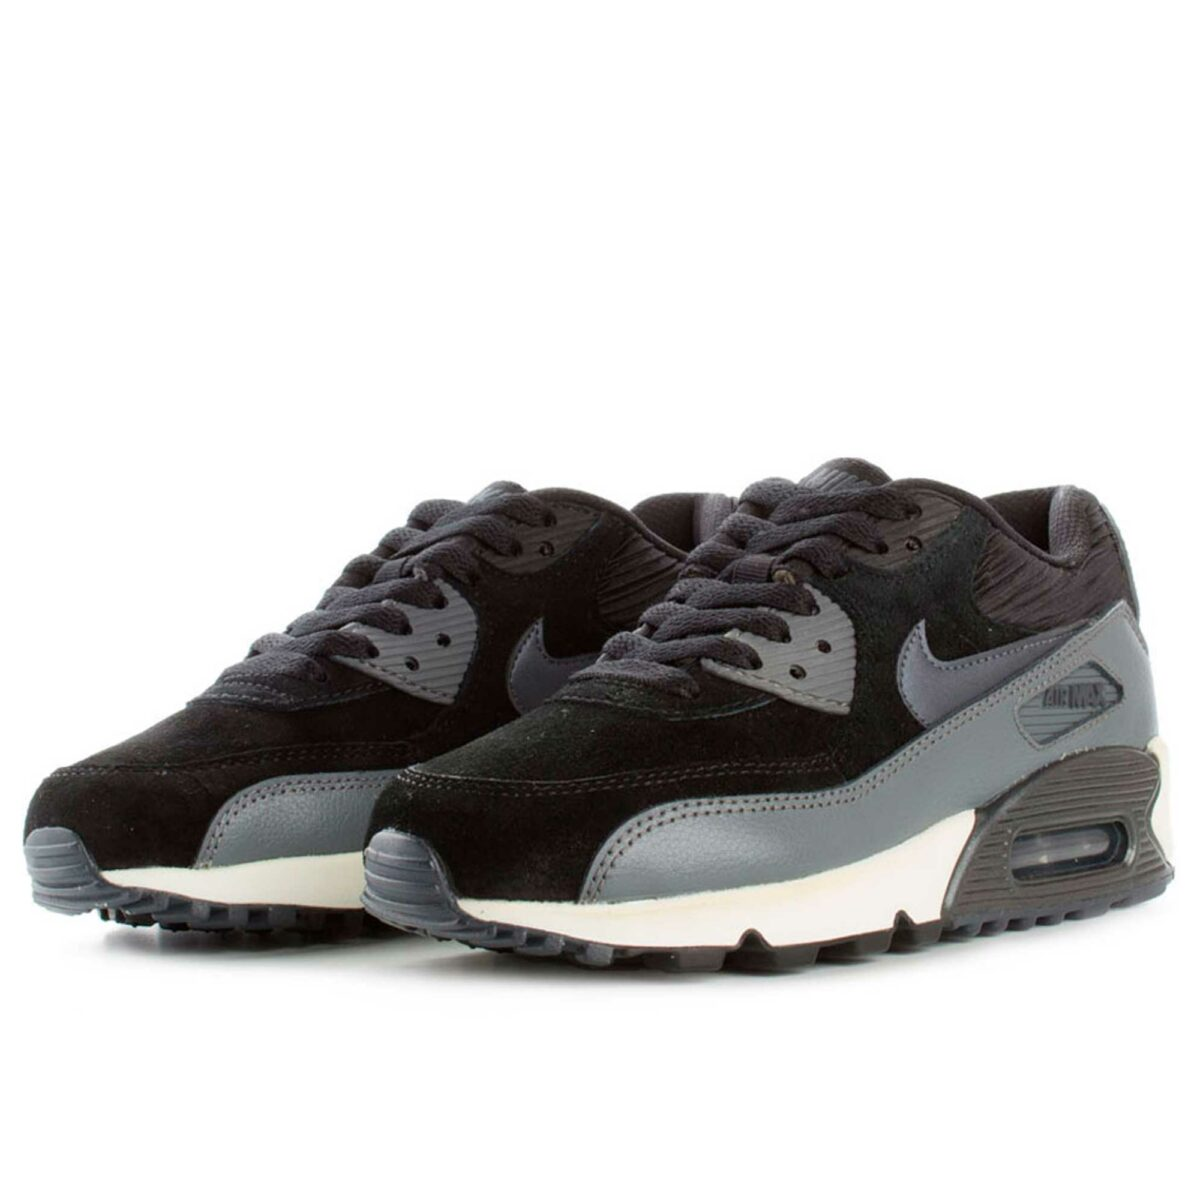 nike air max 90 black grey 768887_001 купить